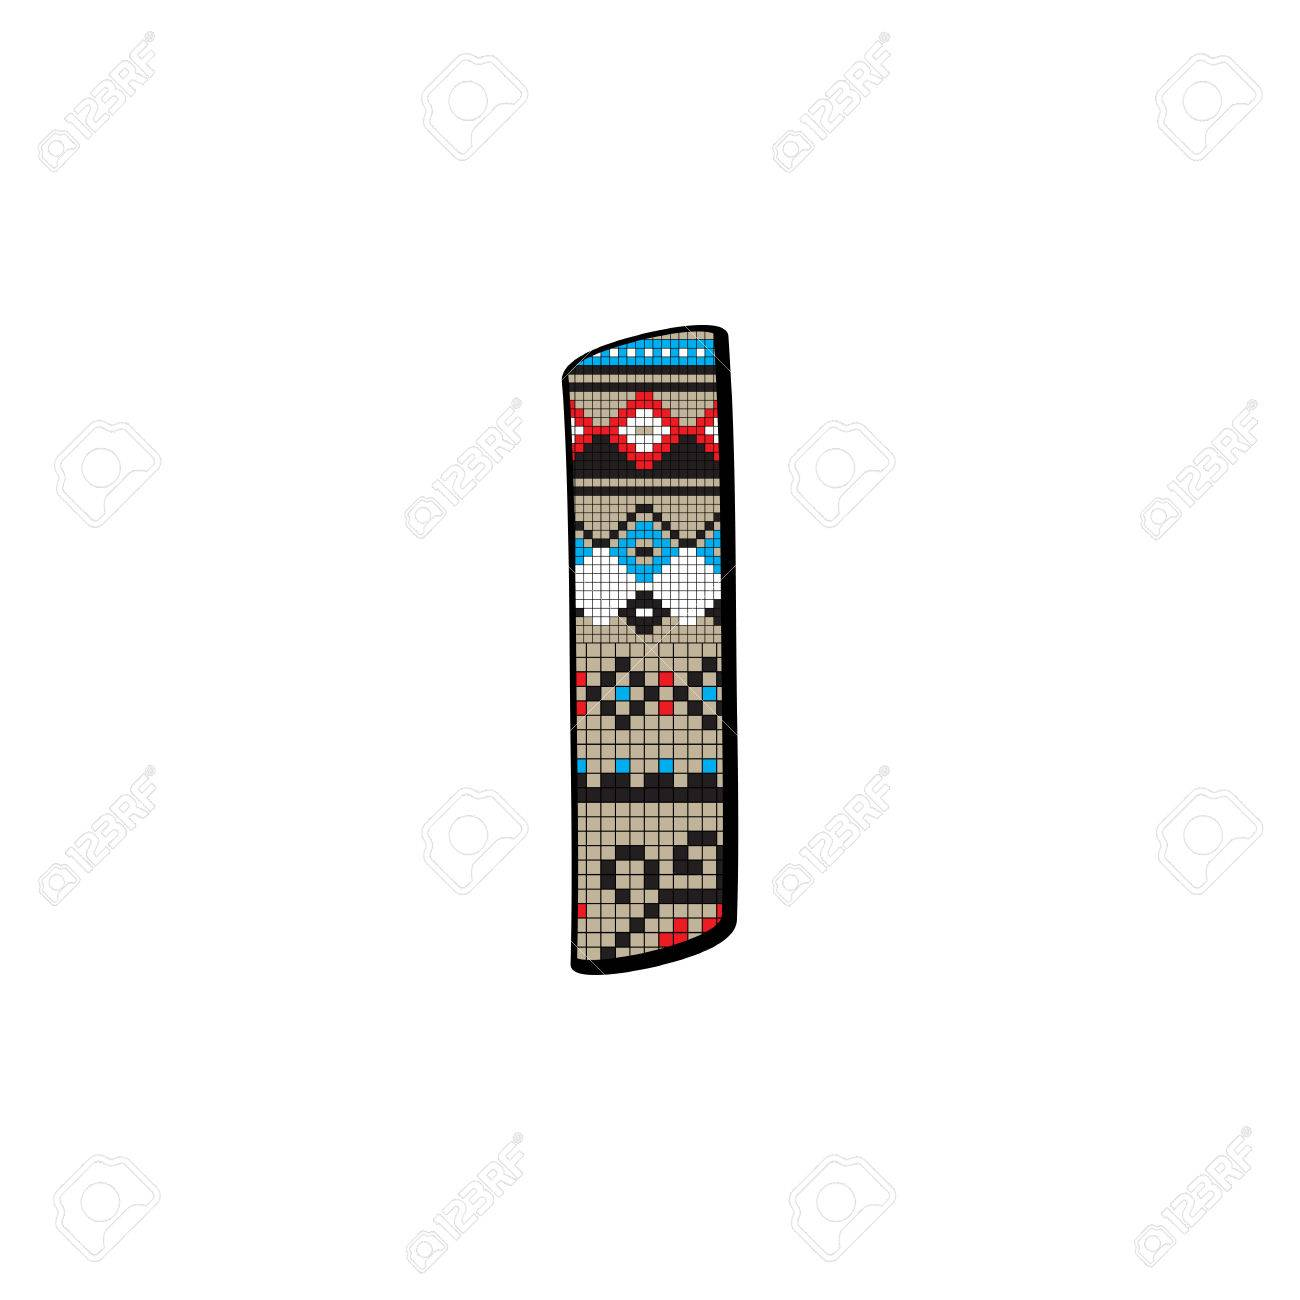 Decorated Original Font Pixel Art Ethnic Model Inspired By A Balkan Motif Over A Funny Fat Small Letter Isolated On White